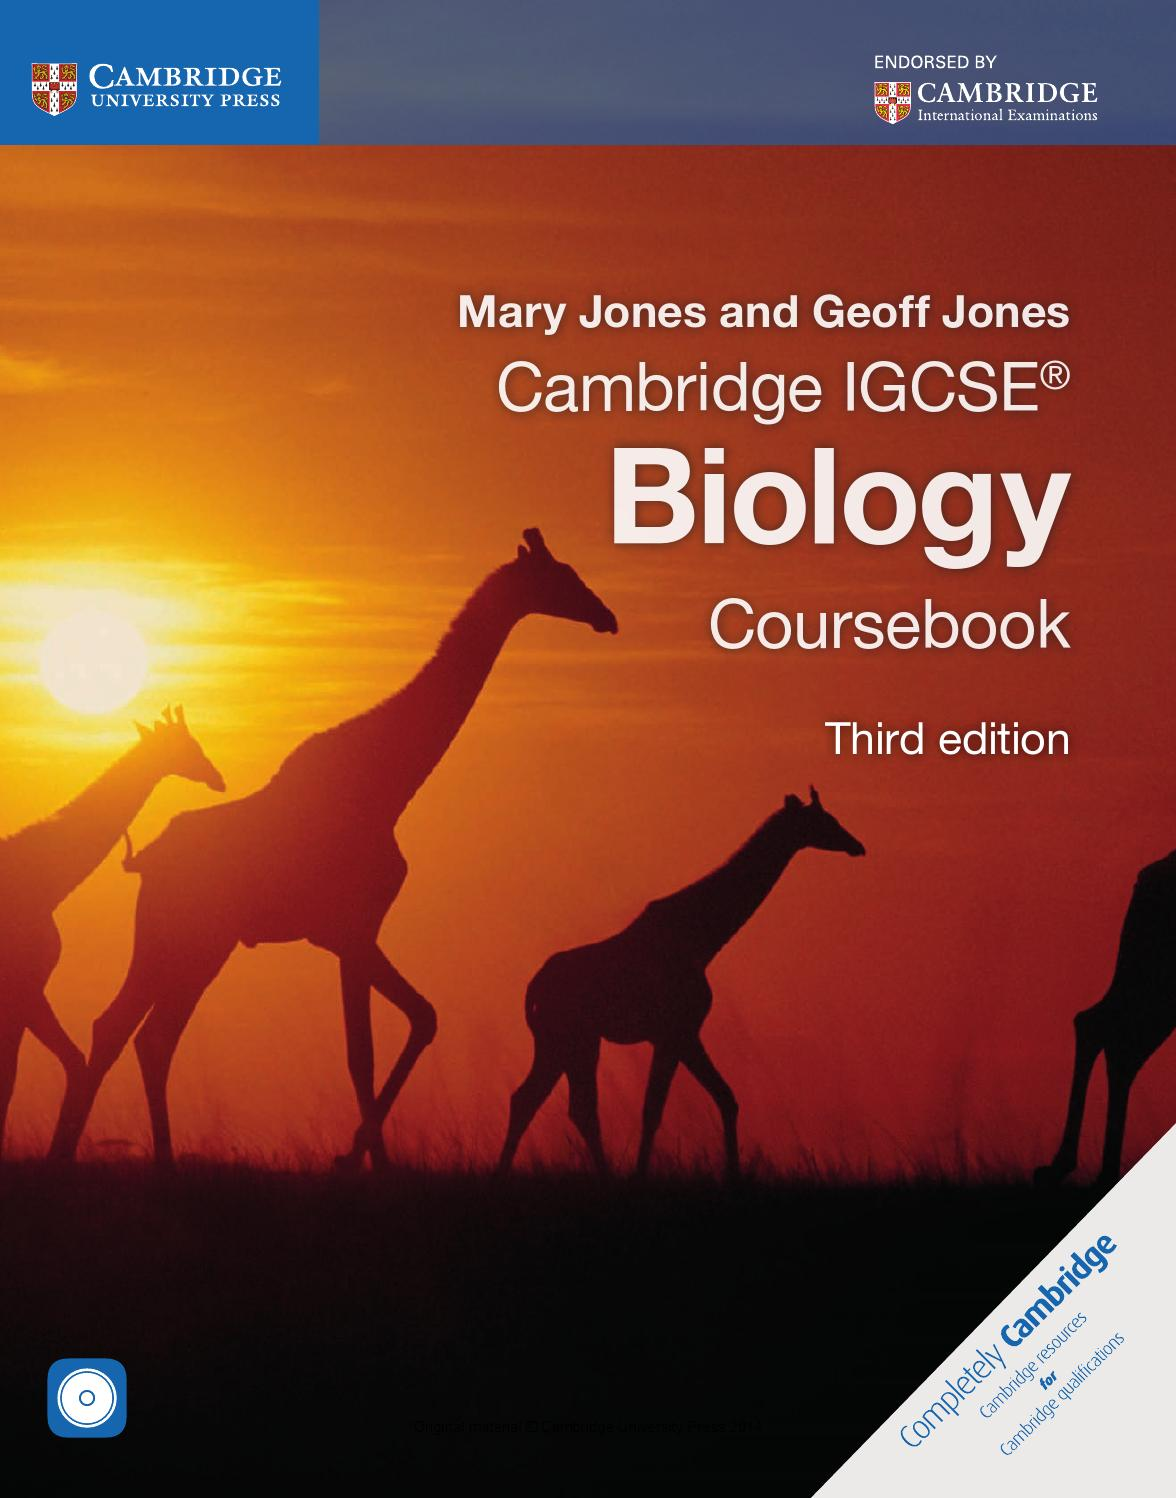 Biology for the ib diploma second edition by cambridge university cambridge igcse biology coursebook third edition fandeluxe Images